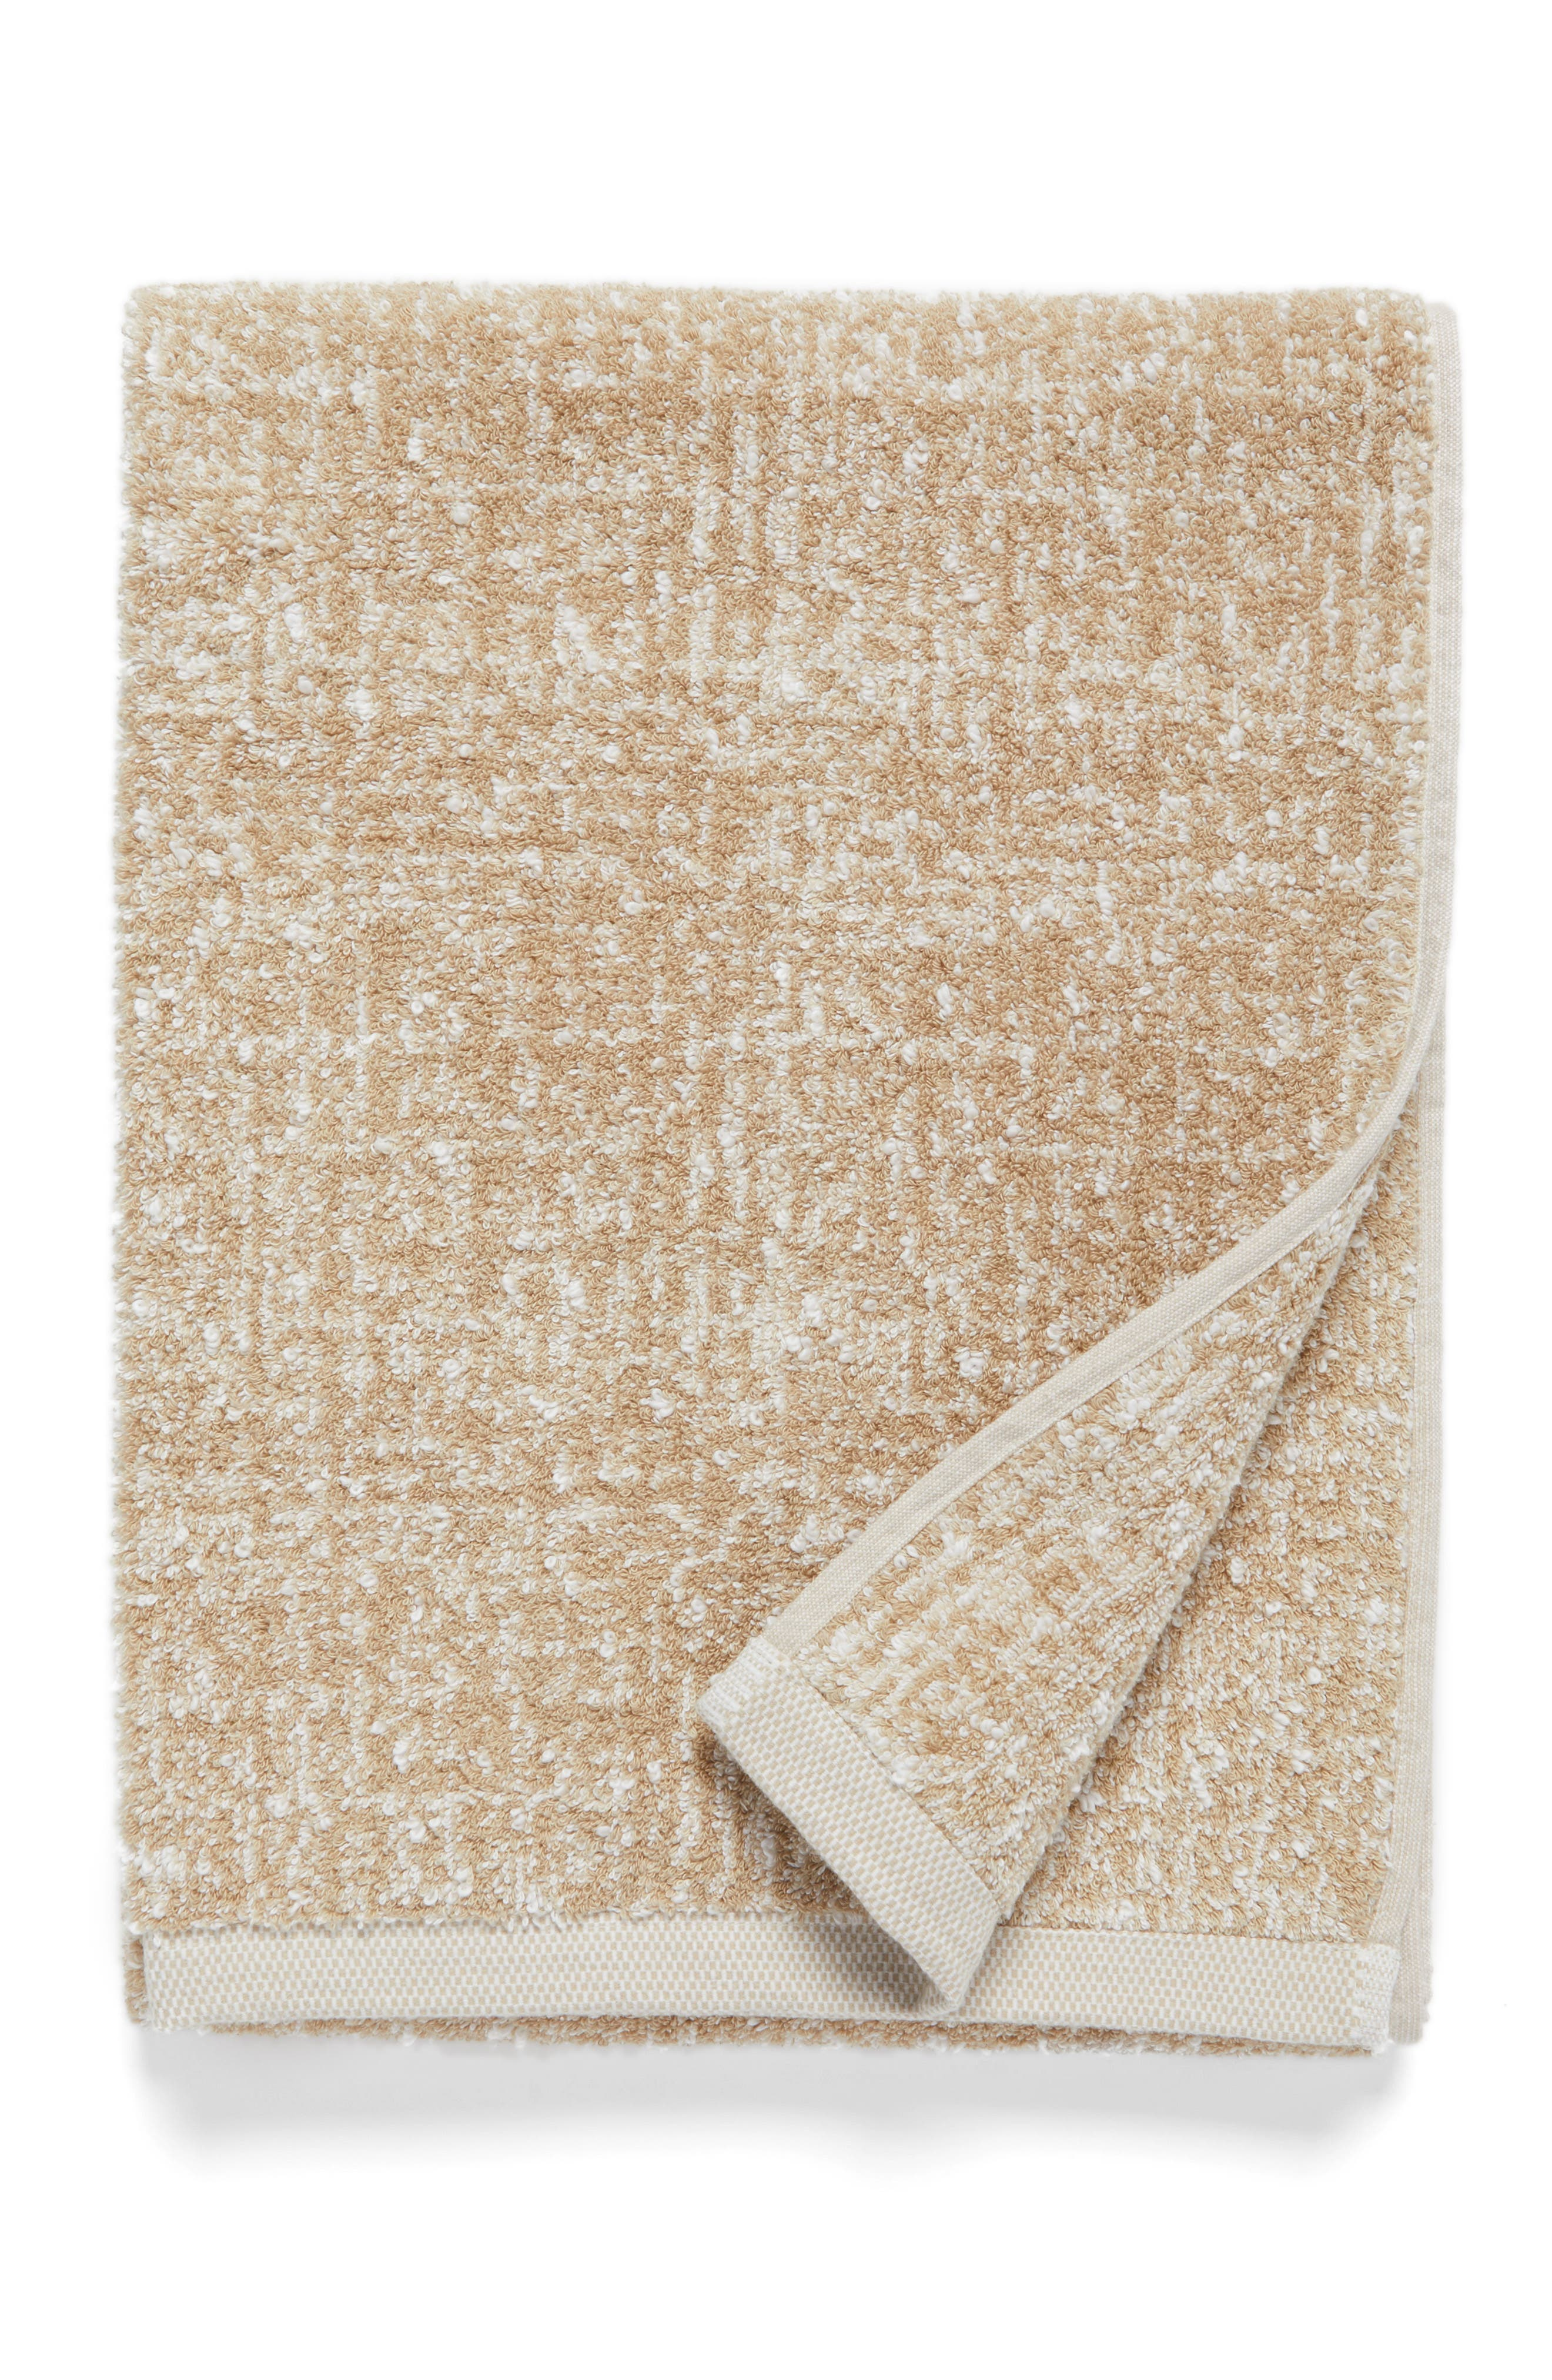 Nordstrom at Home Tweed Jacquard Bath Towel (2 for $49)